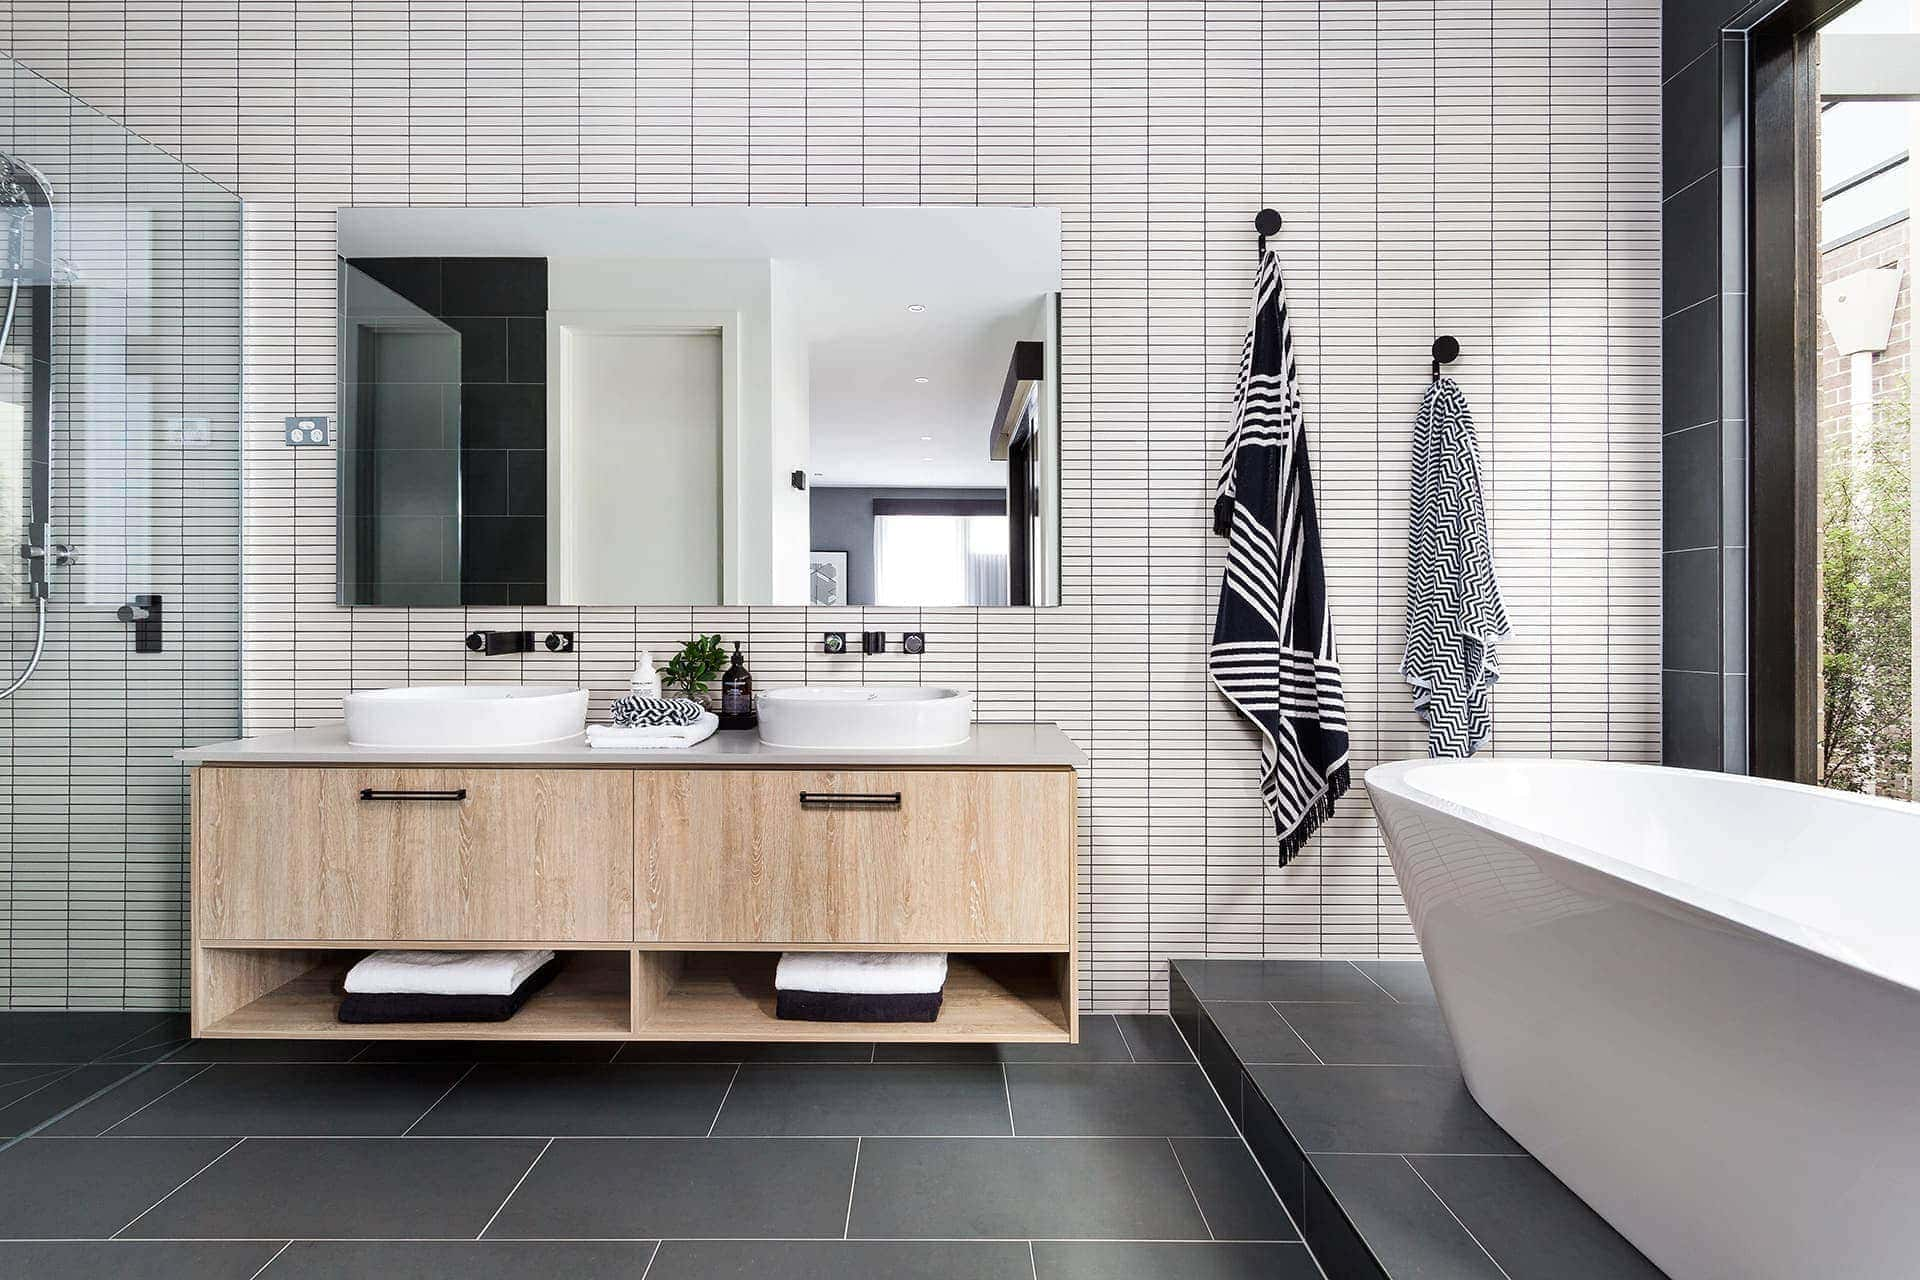 bathroom with white rectangular bathroom tiles grey grout and charcoal floor tiles